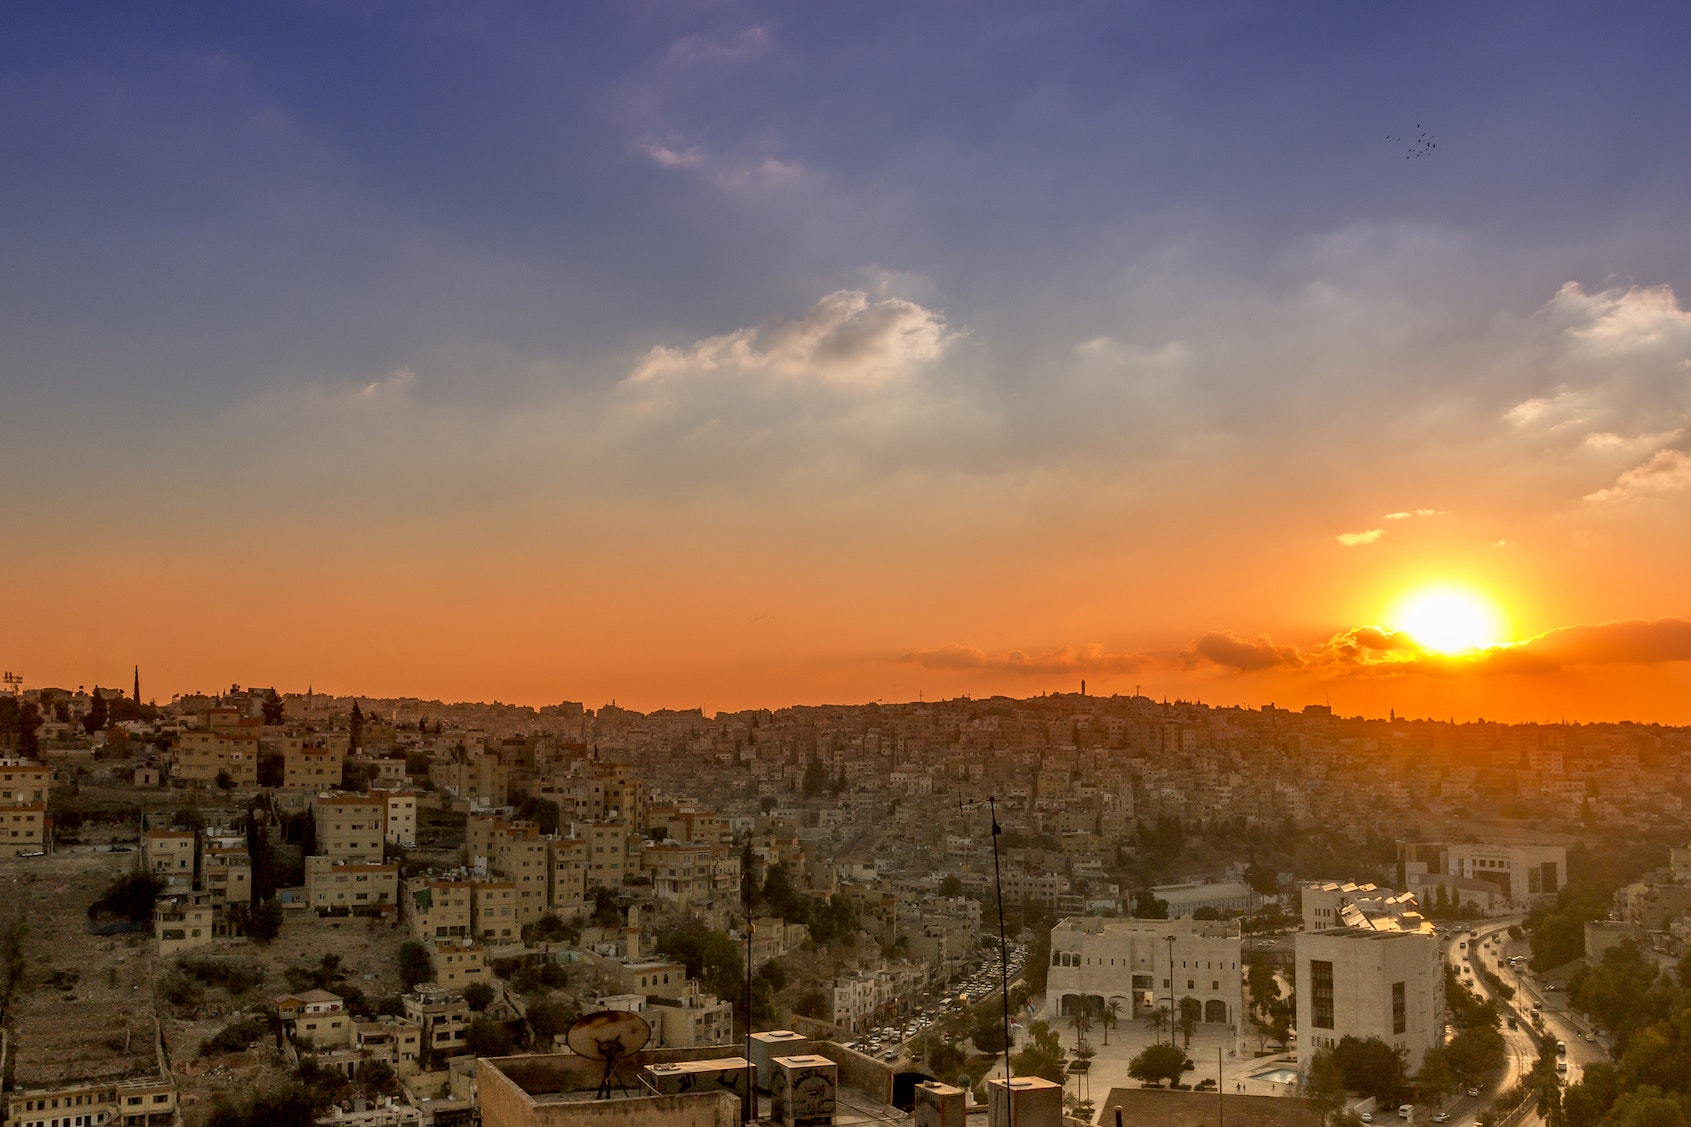 Jordan's capital city, Amman, is home to both modern buildings and ancient ruins.